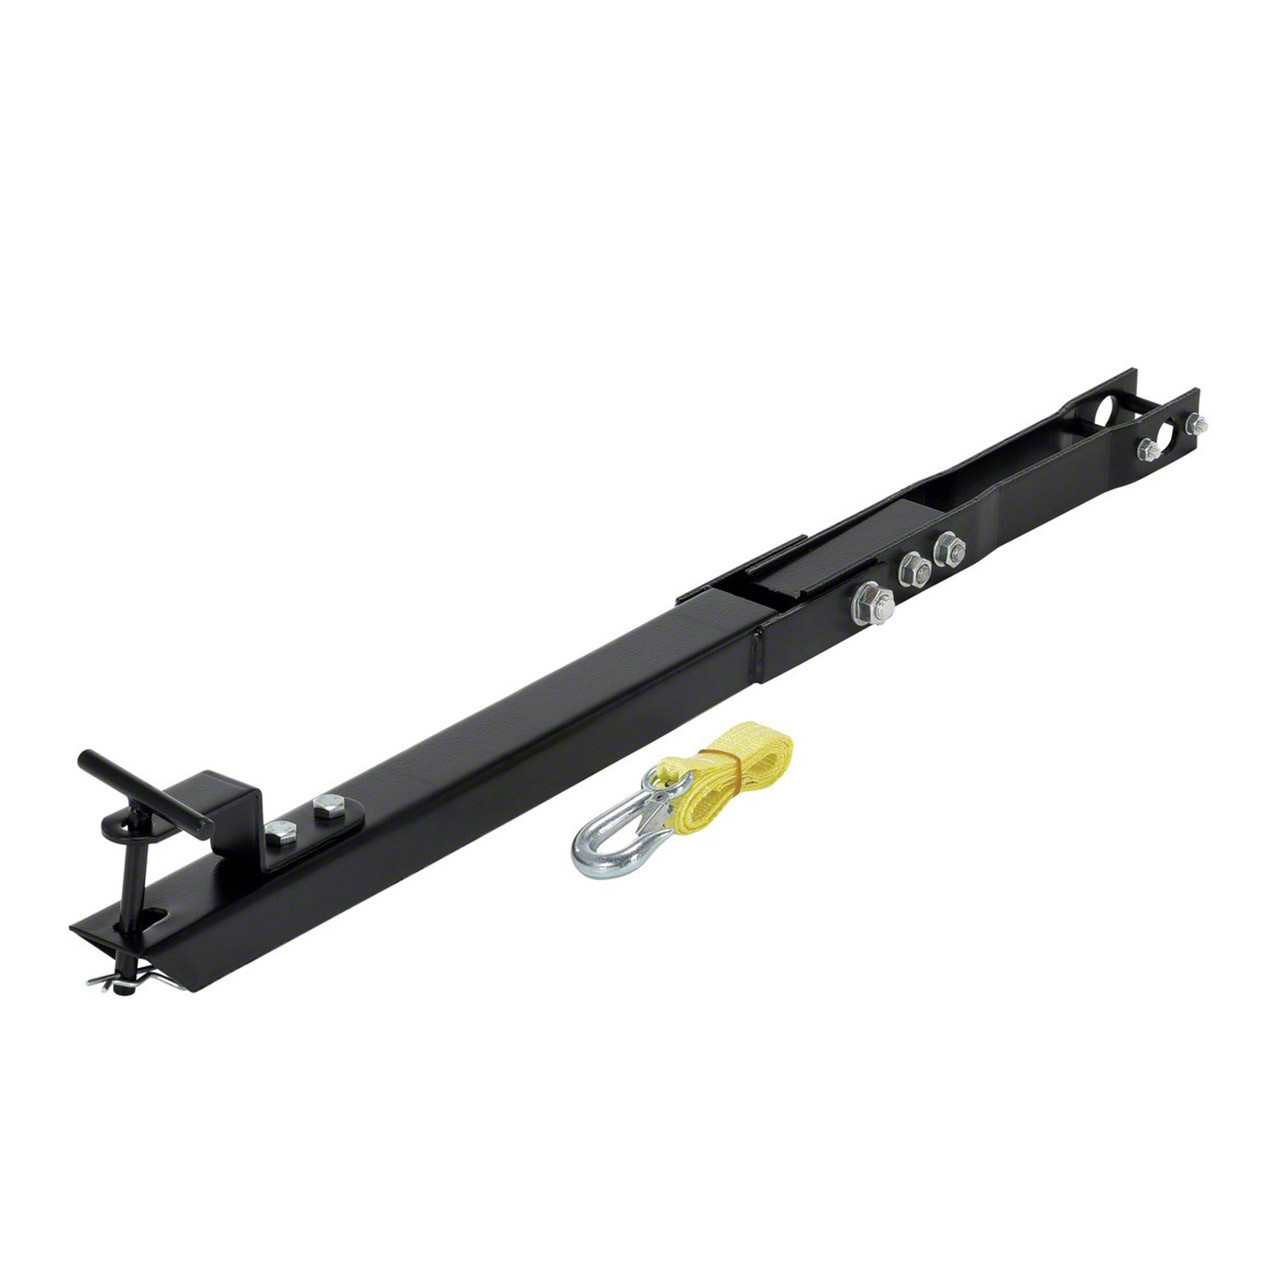 The pallet jack tow accessory is easy to install